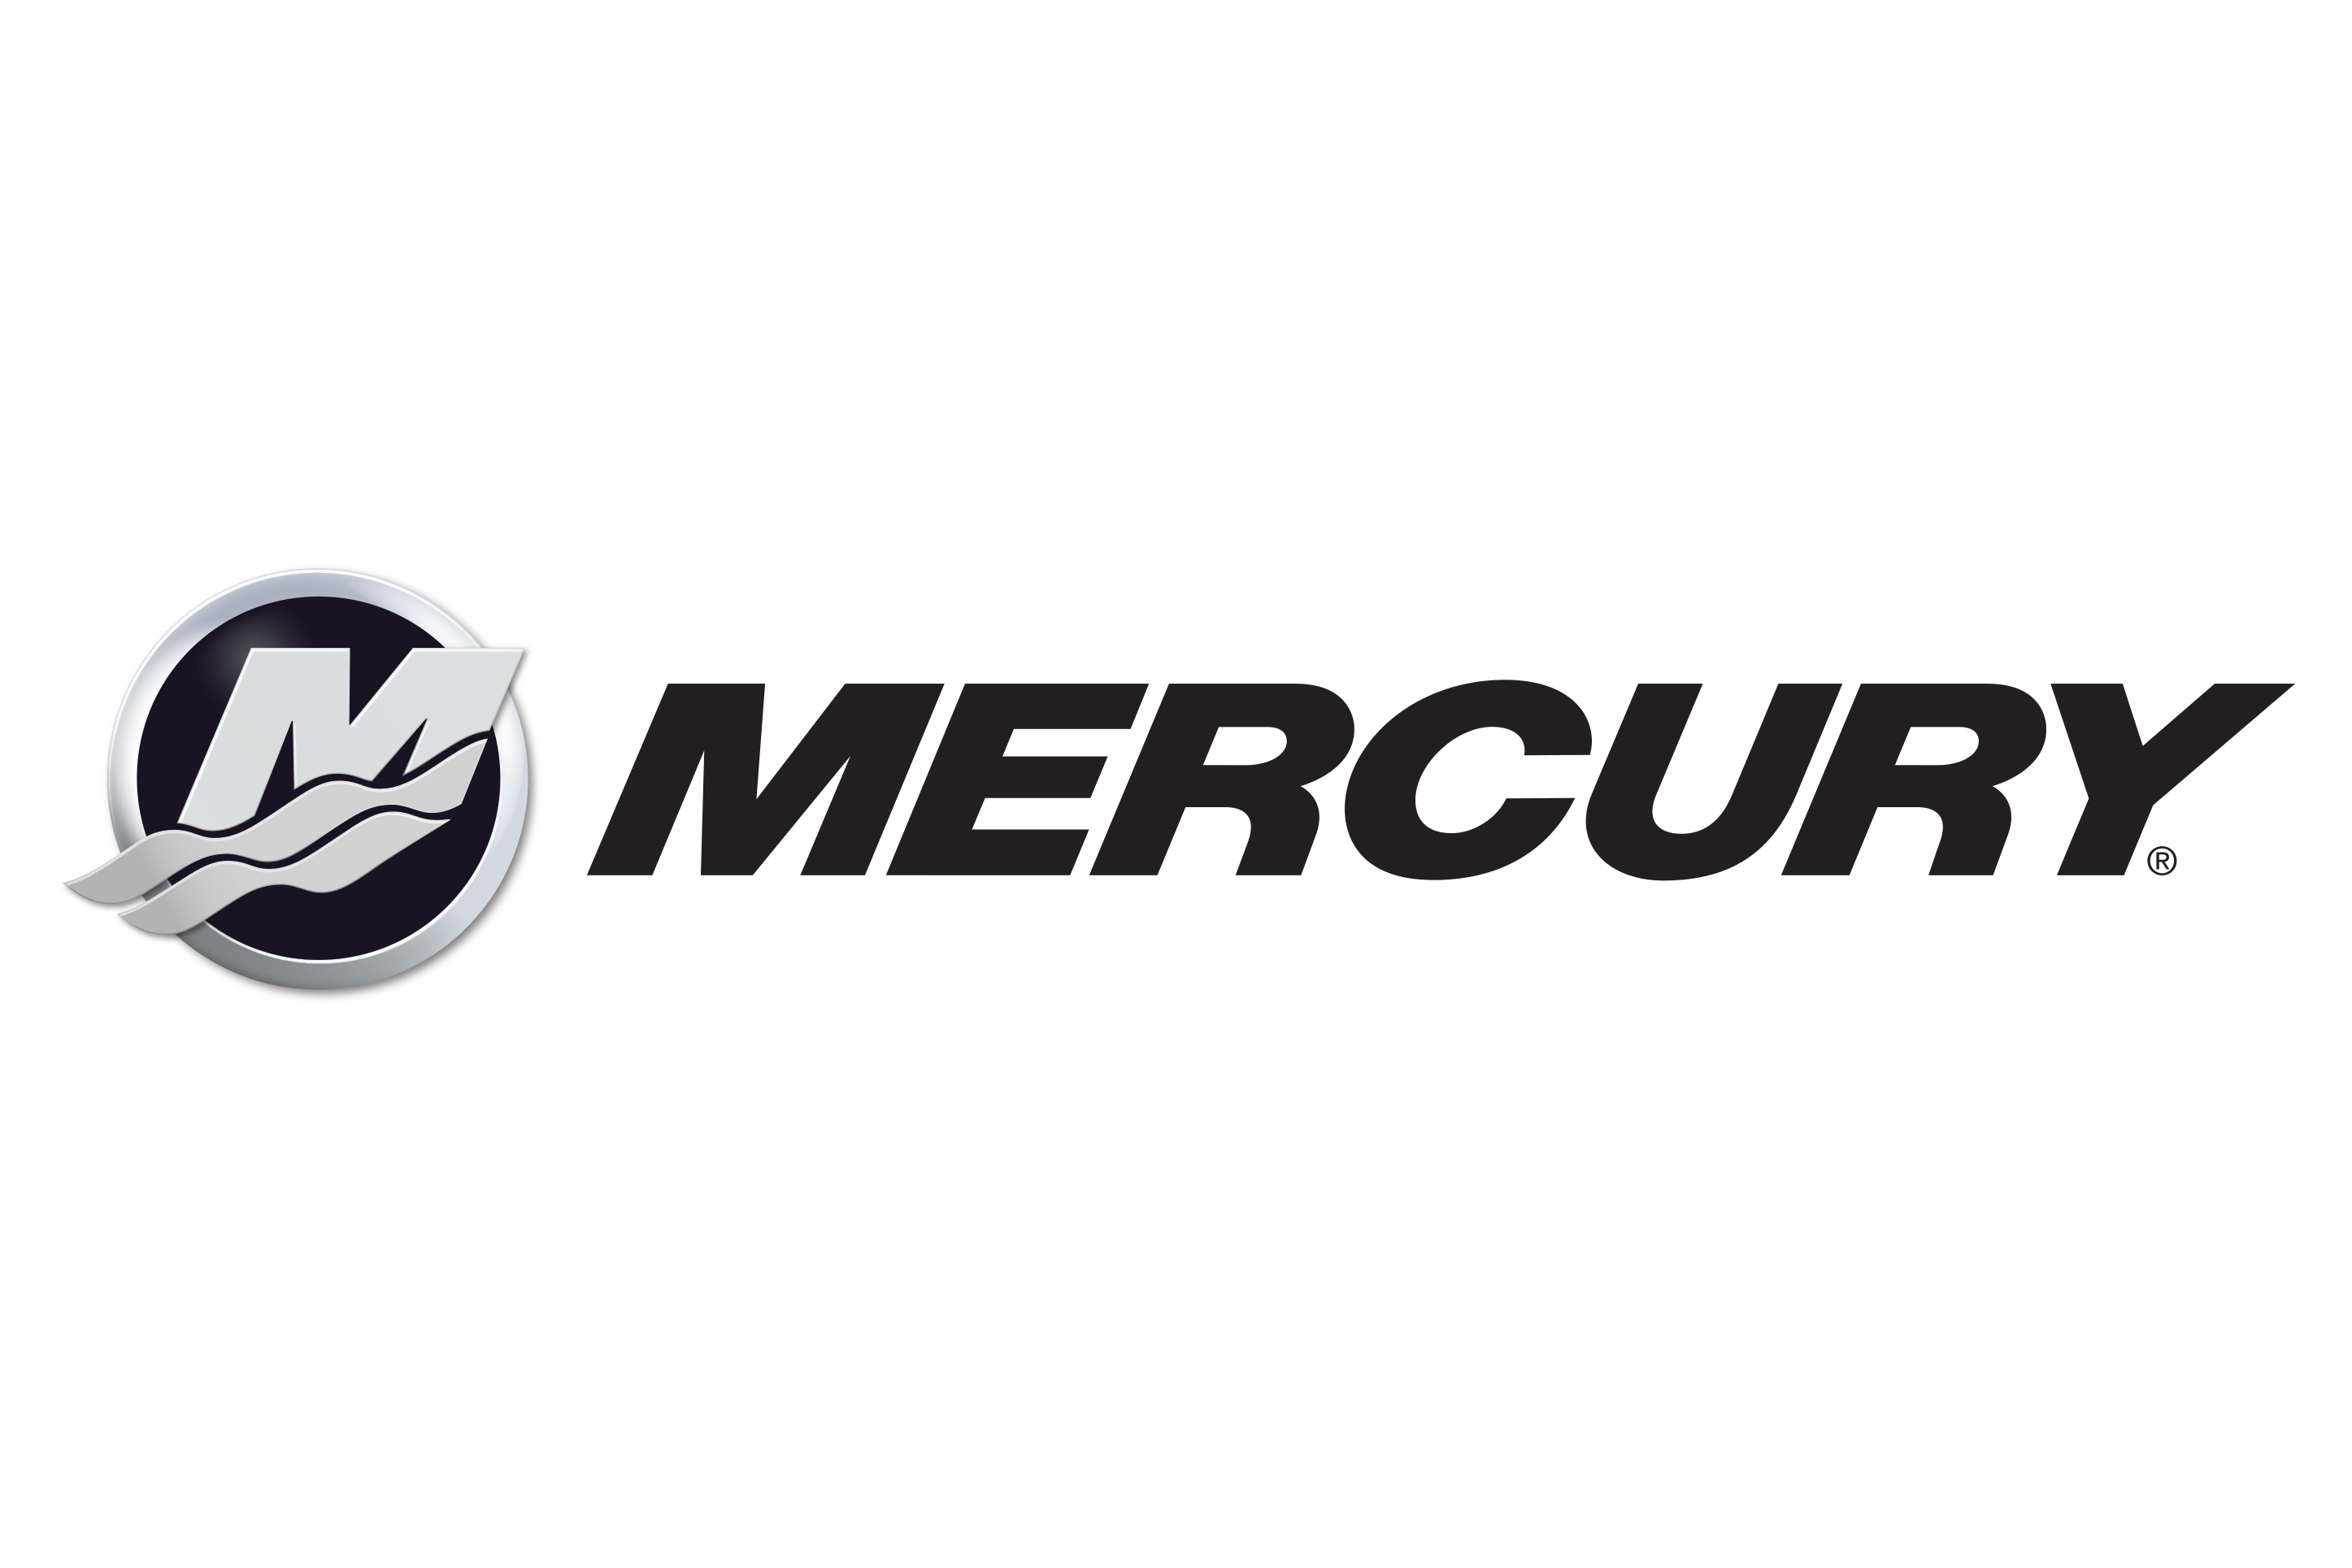 Mercury_Alternate_Lockup